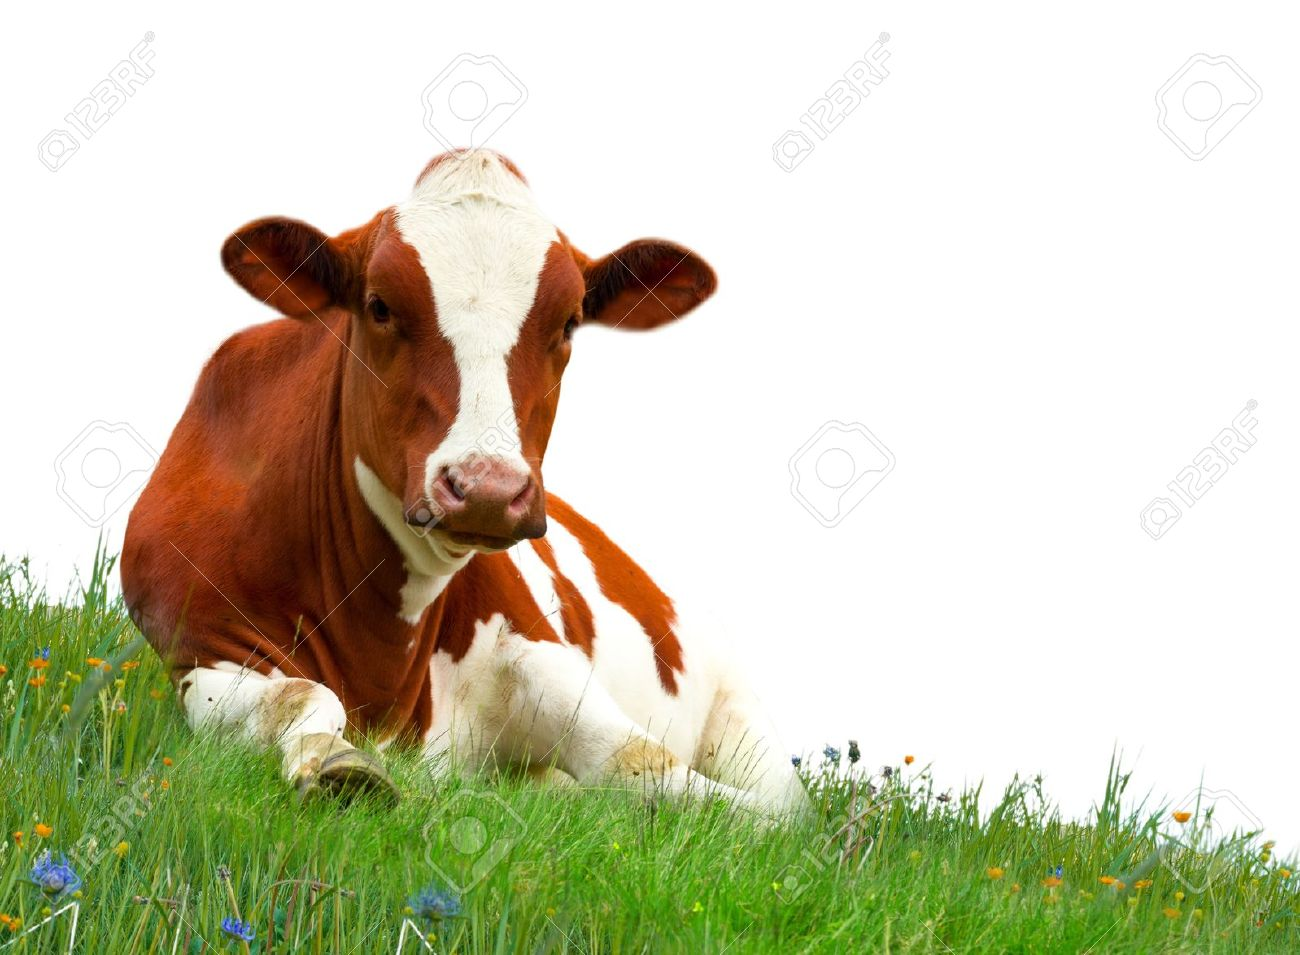 Cow Pictures Kids Search